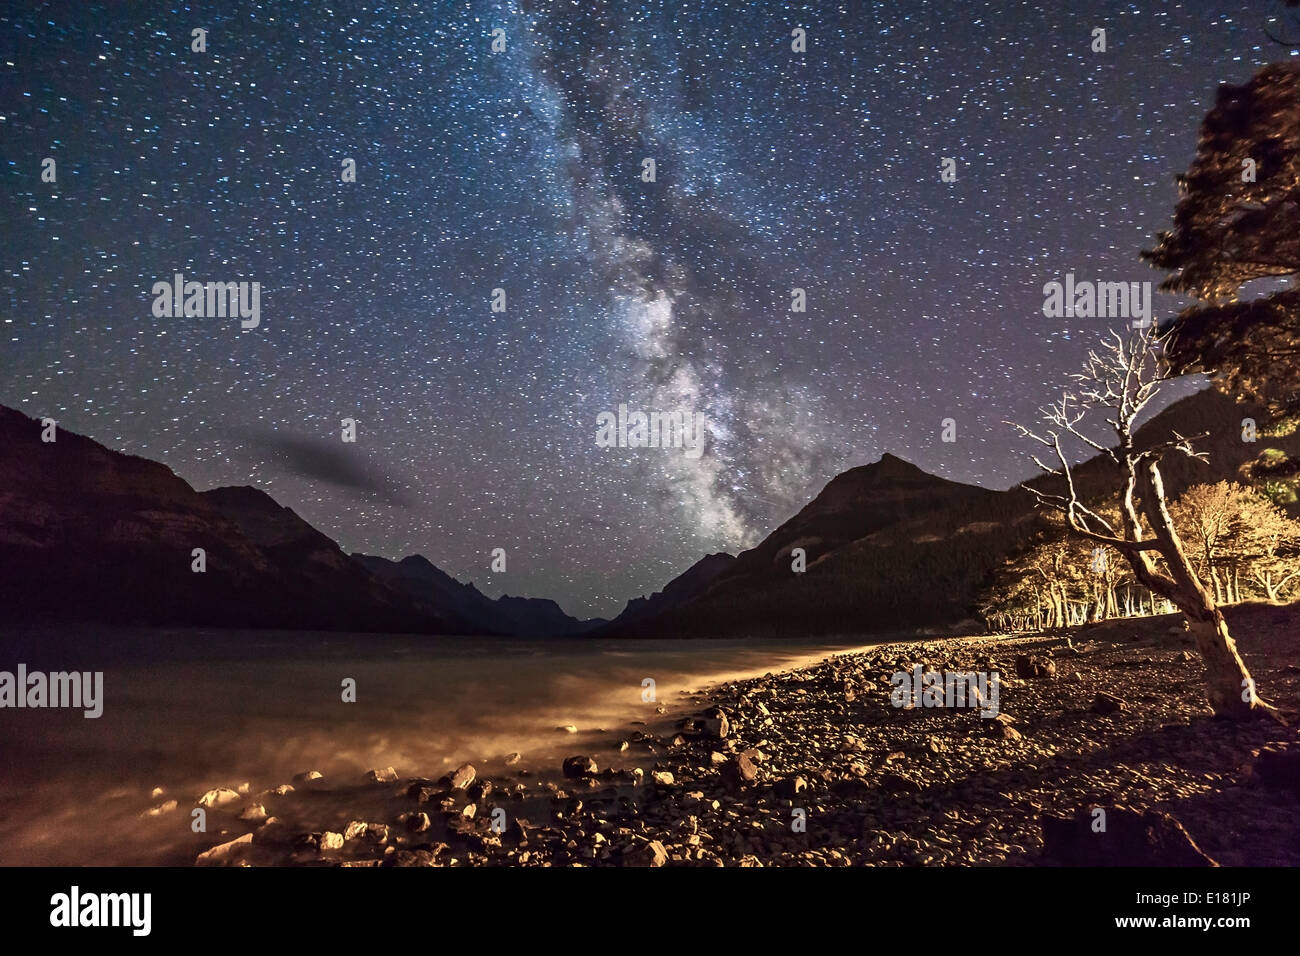 Nightscape - Stock Image